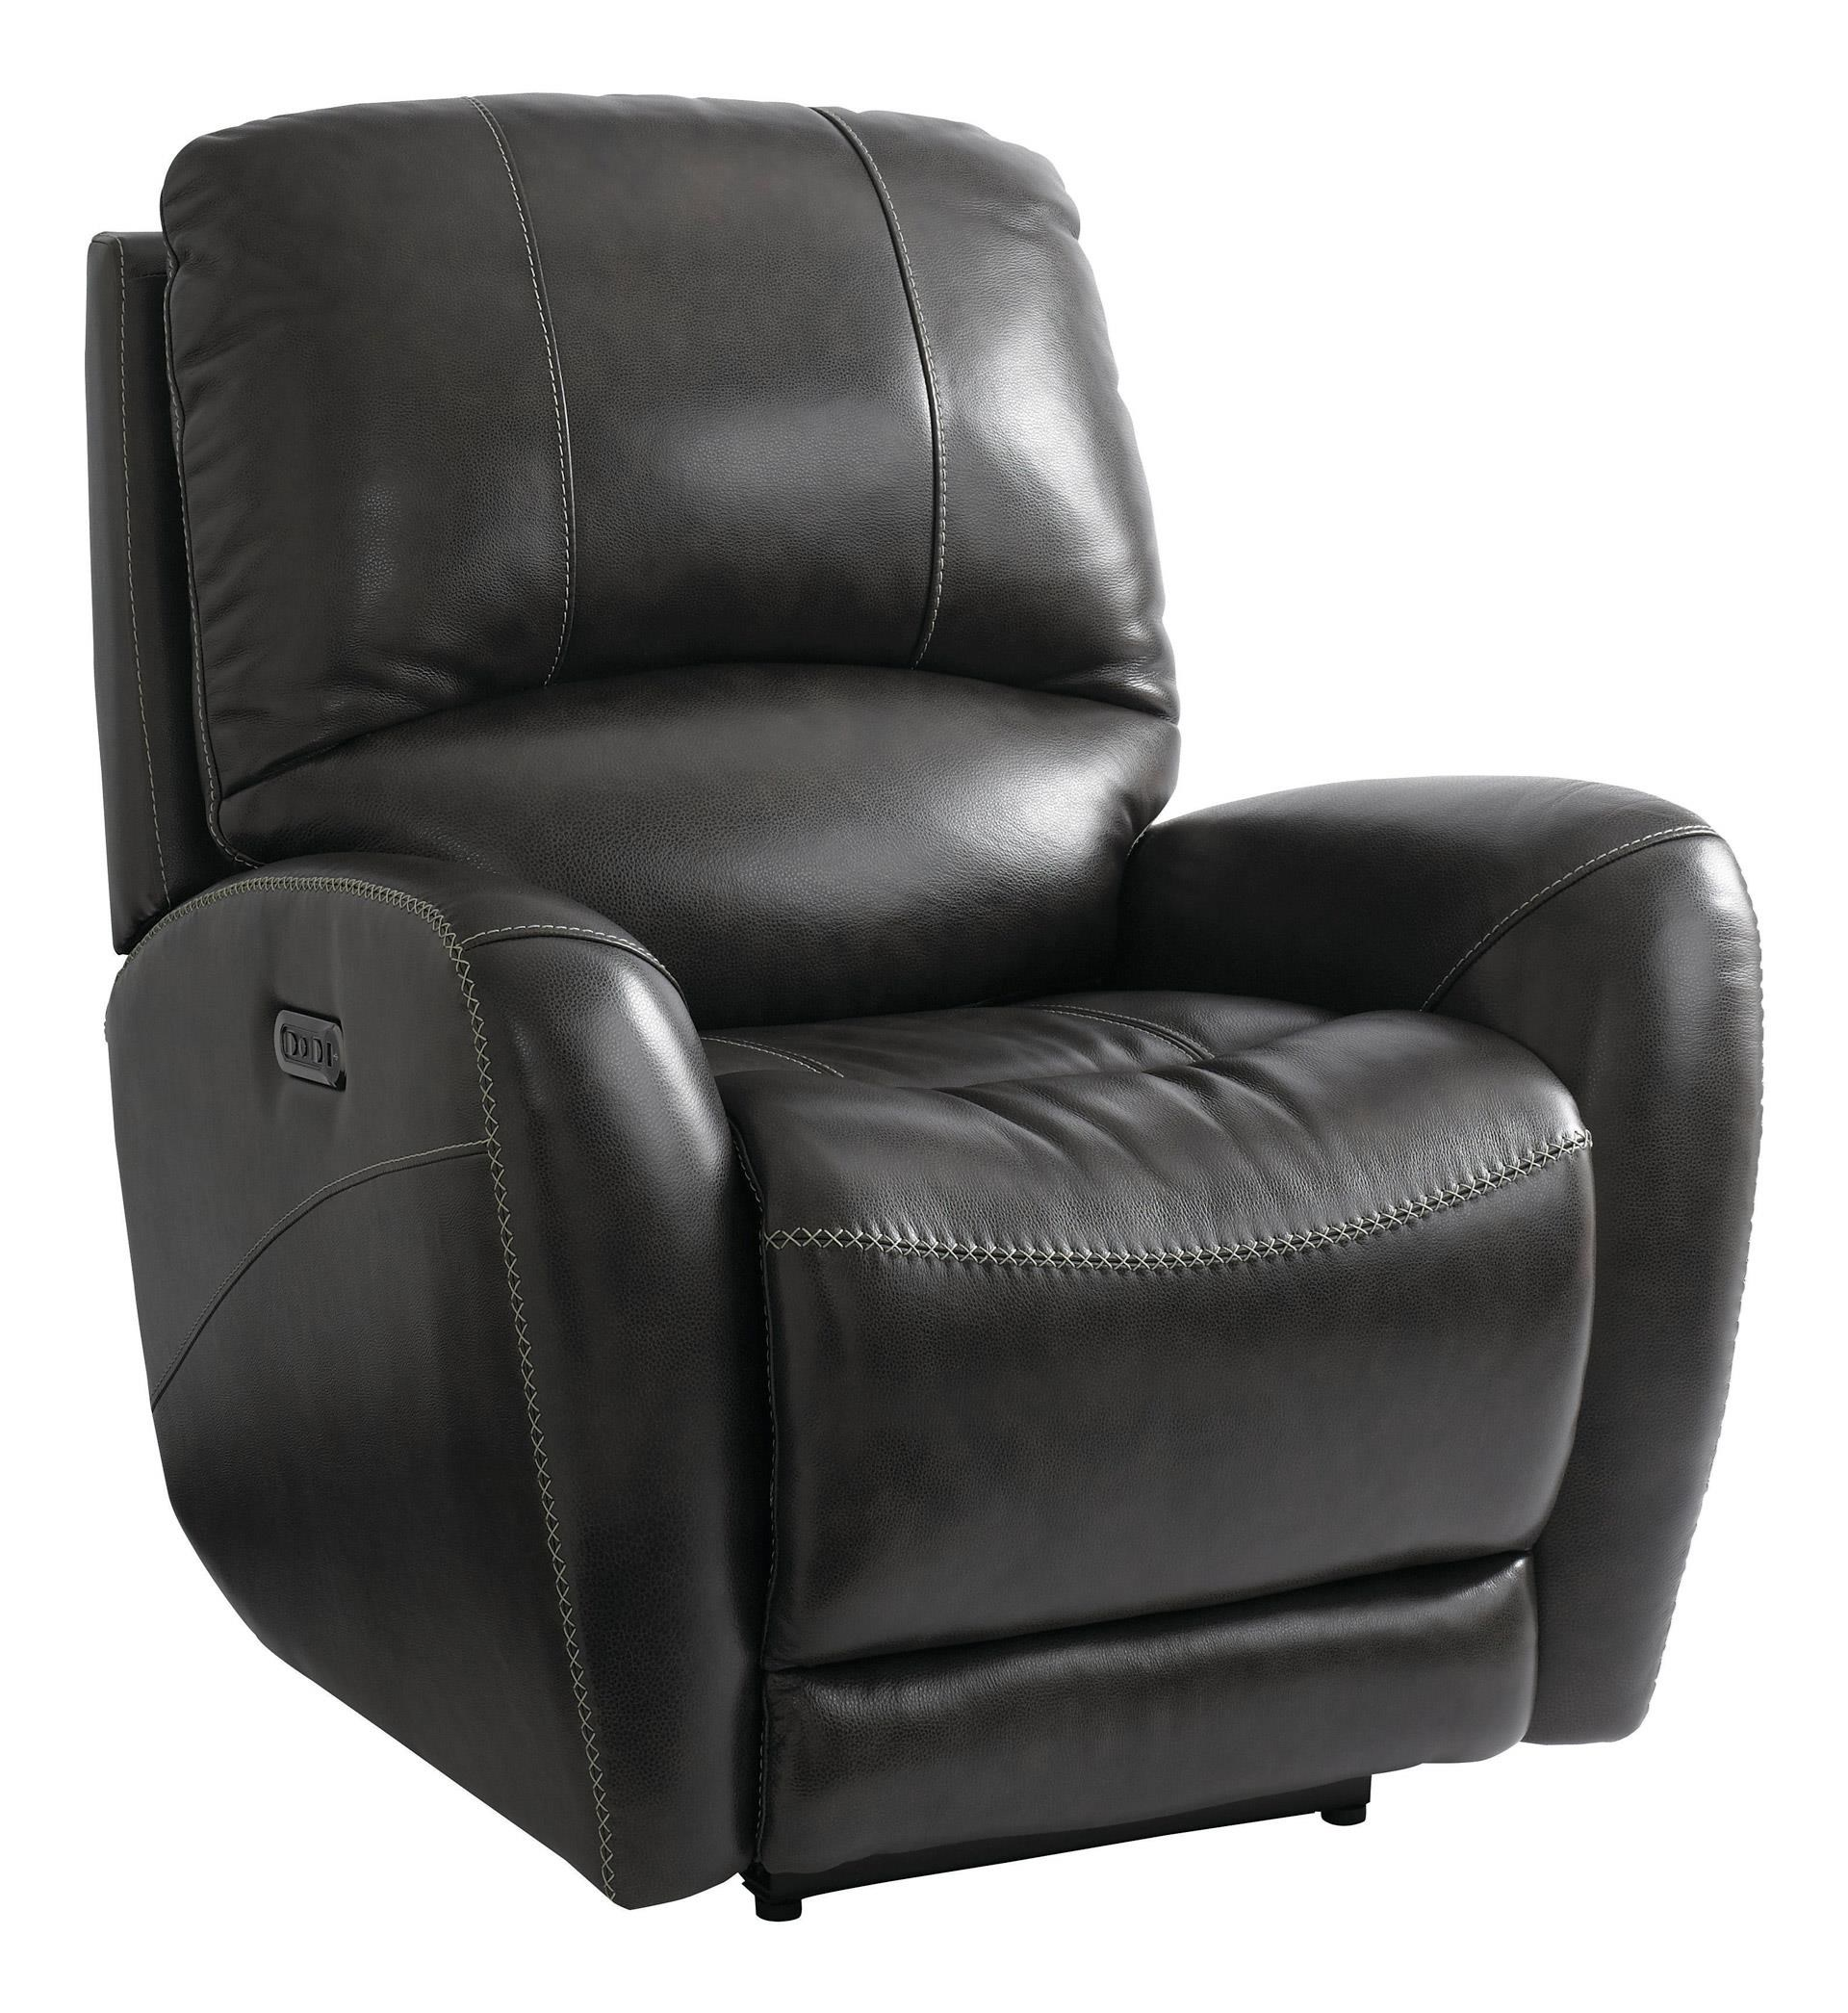 Bassett Club Level Recliner Wilson Power Leather Recliner W/ Head and F - Item Number: 3507-P0WD